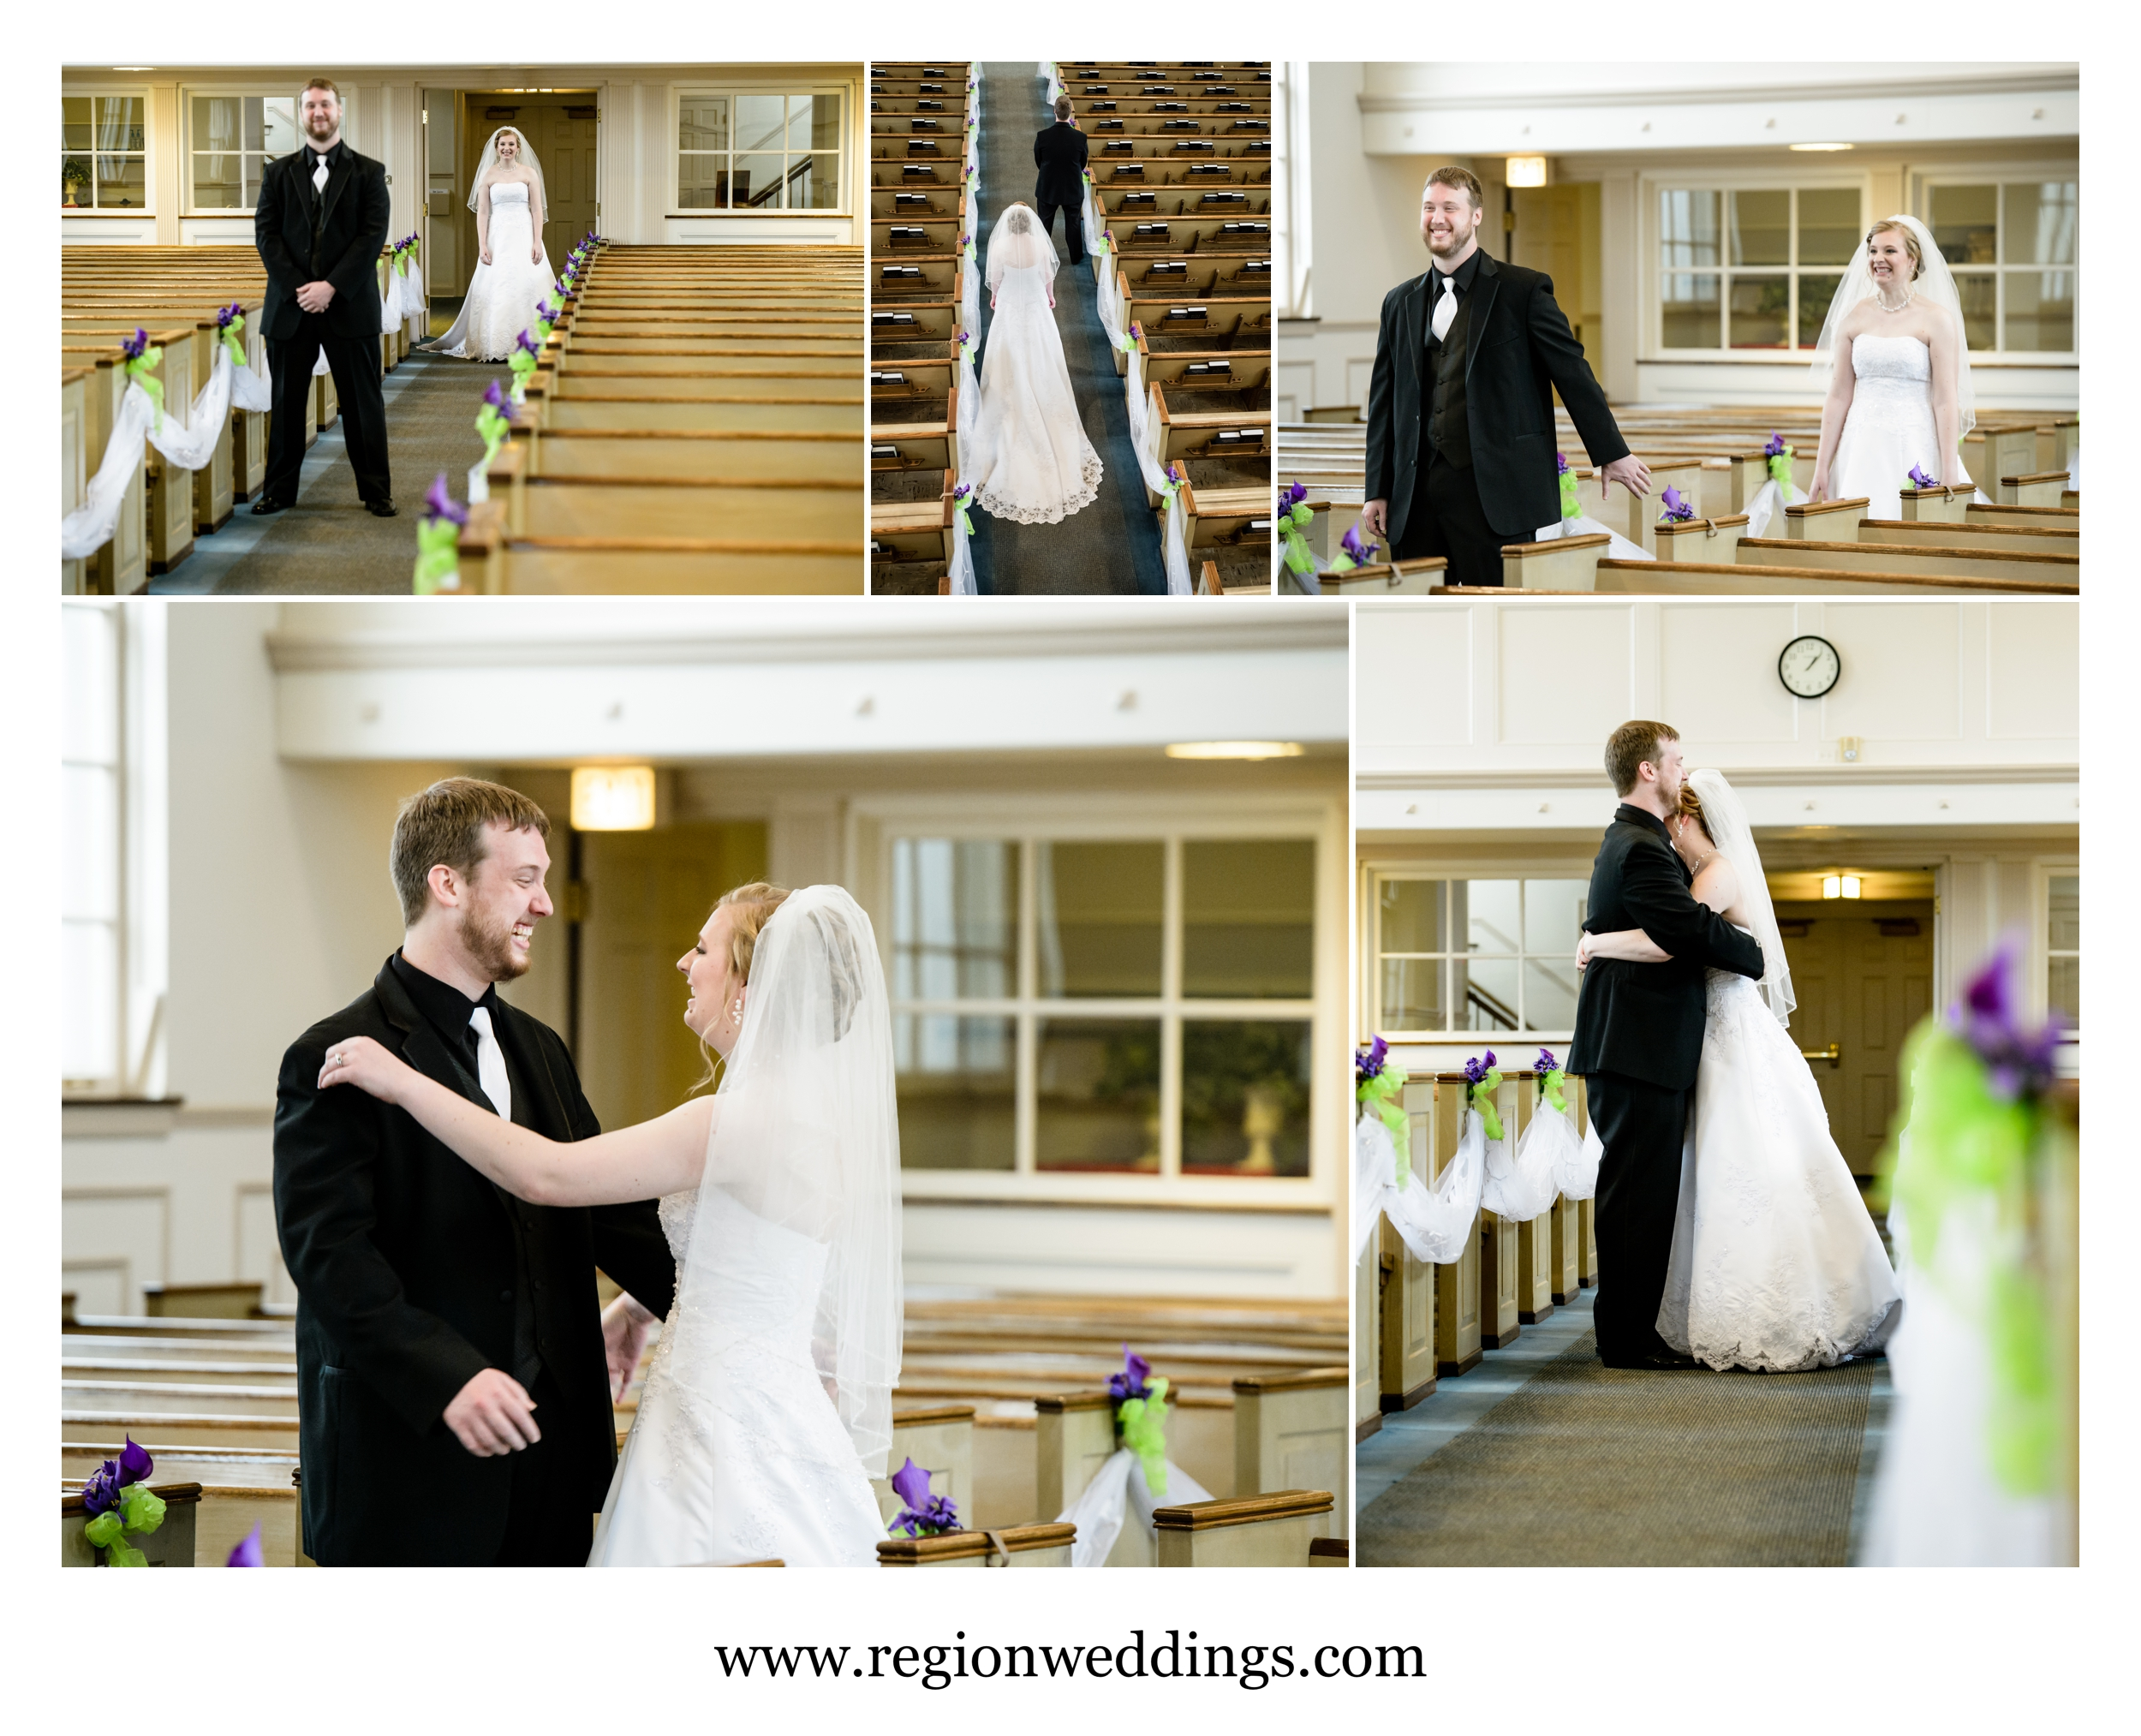 First look / reveal for the bride and groom at Oak Glen United Reformed Church.